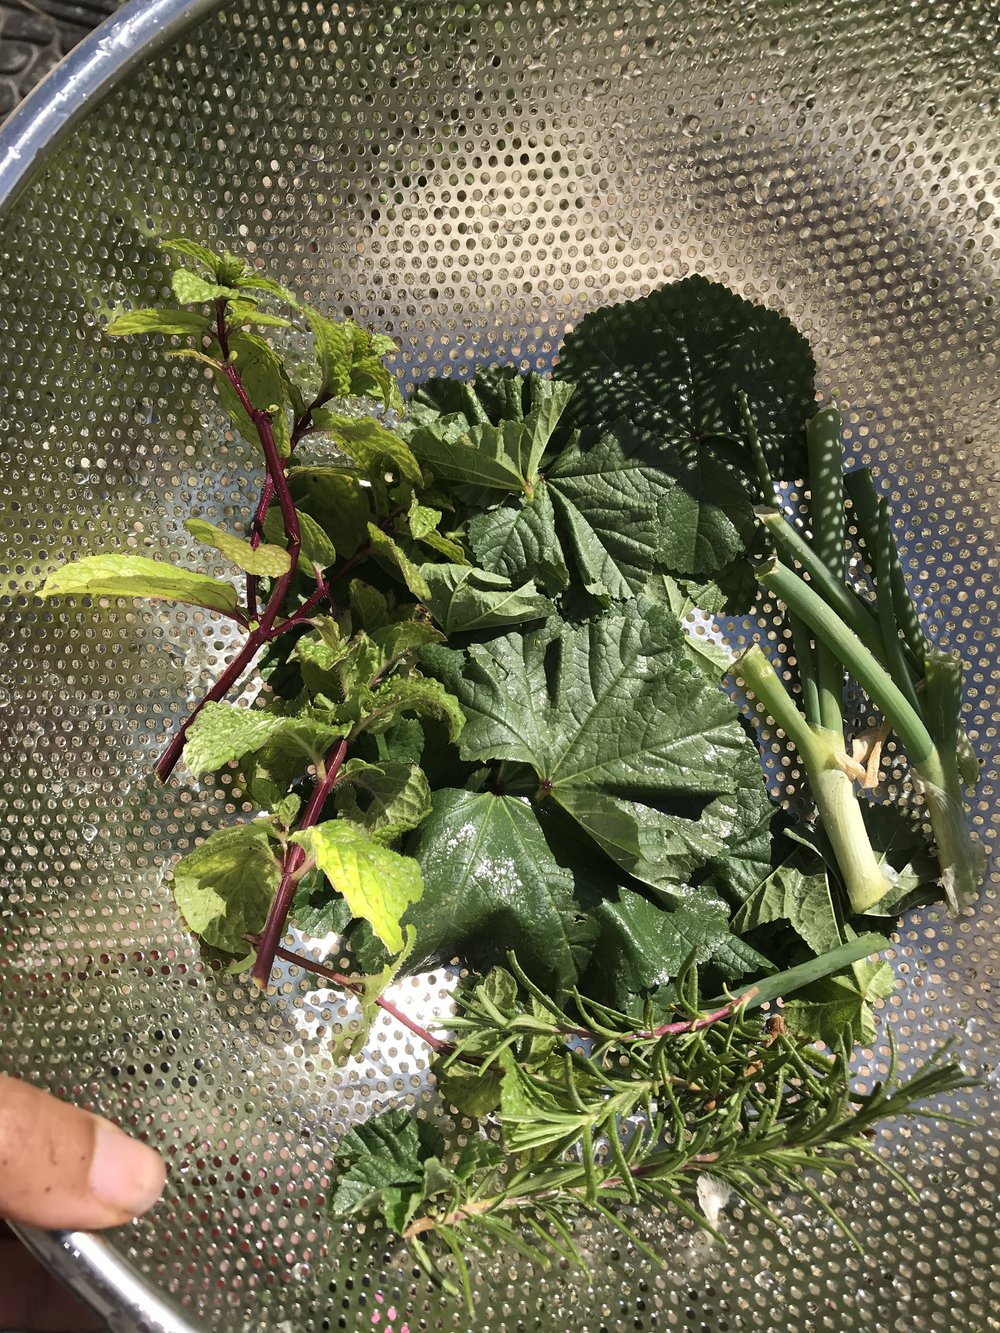 Edible Mallow leaves (a weed) in the mix